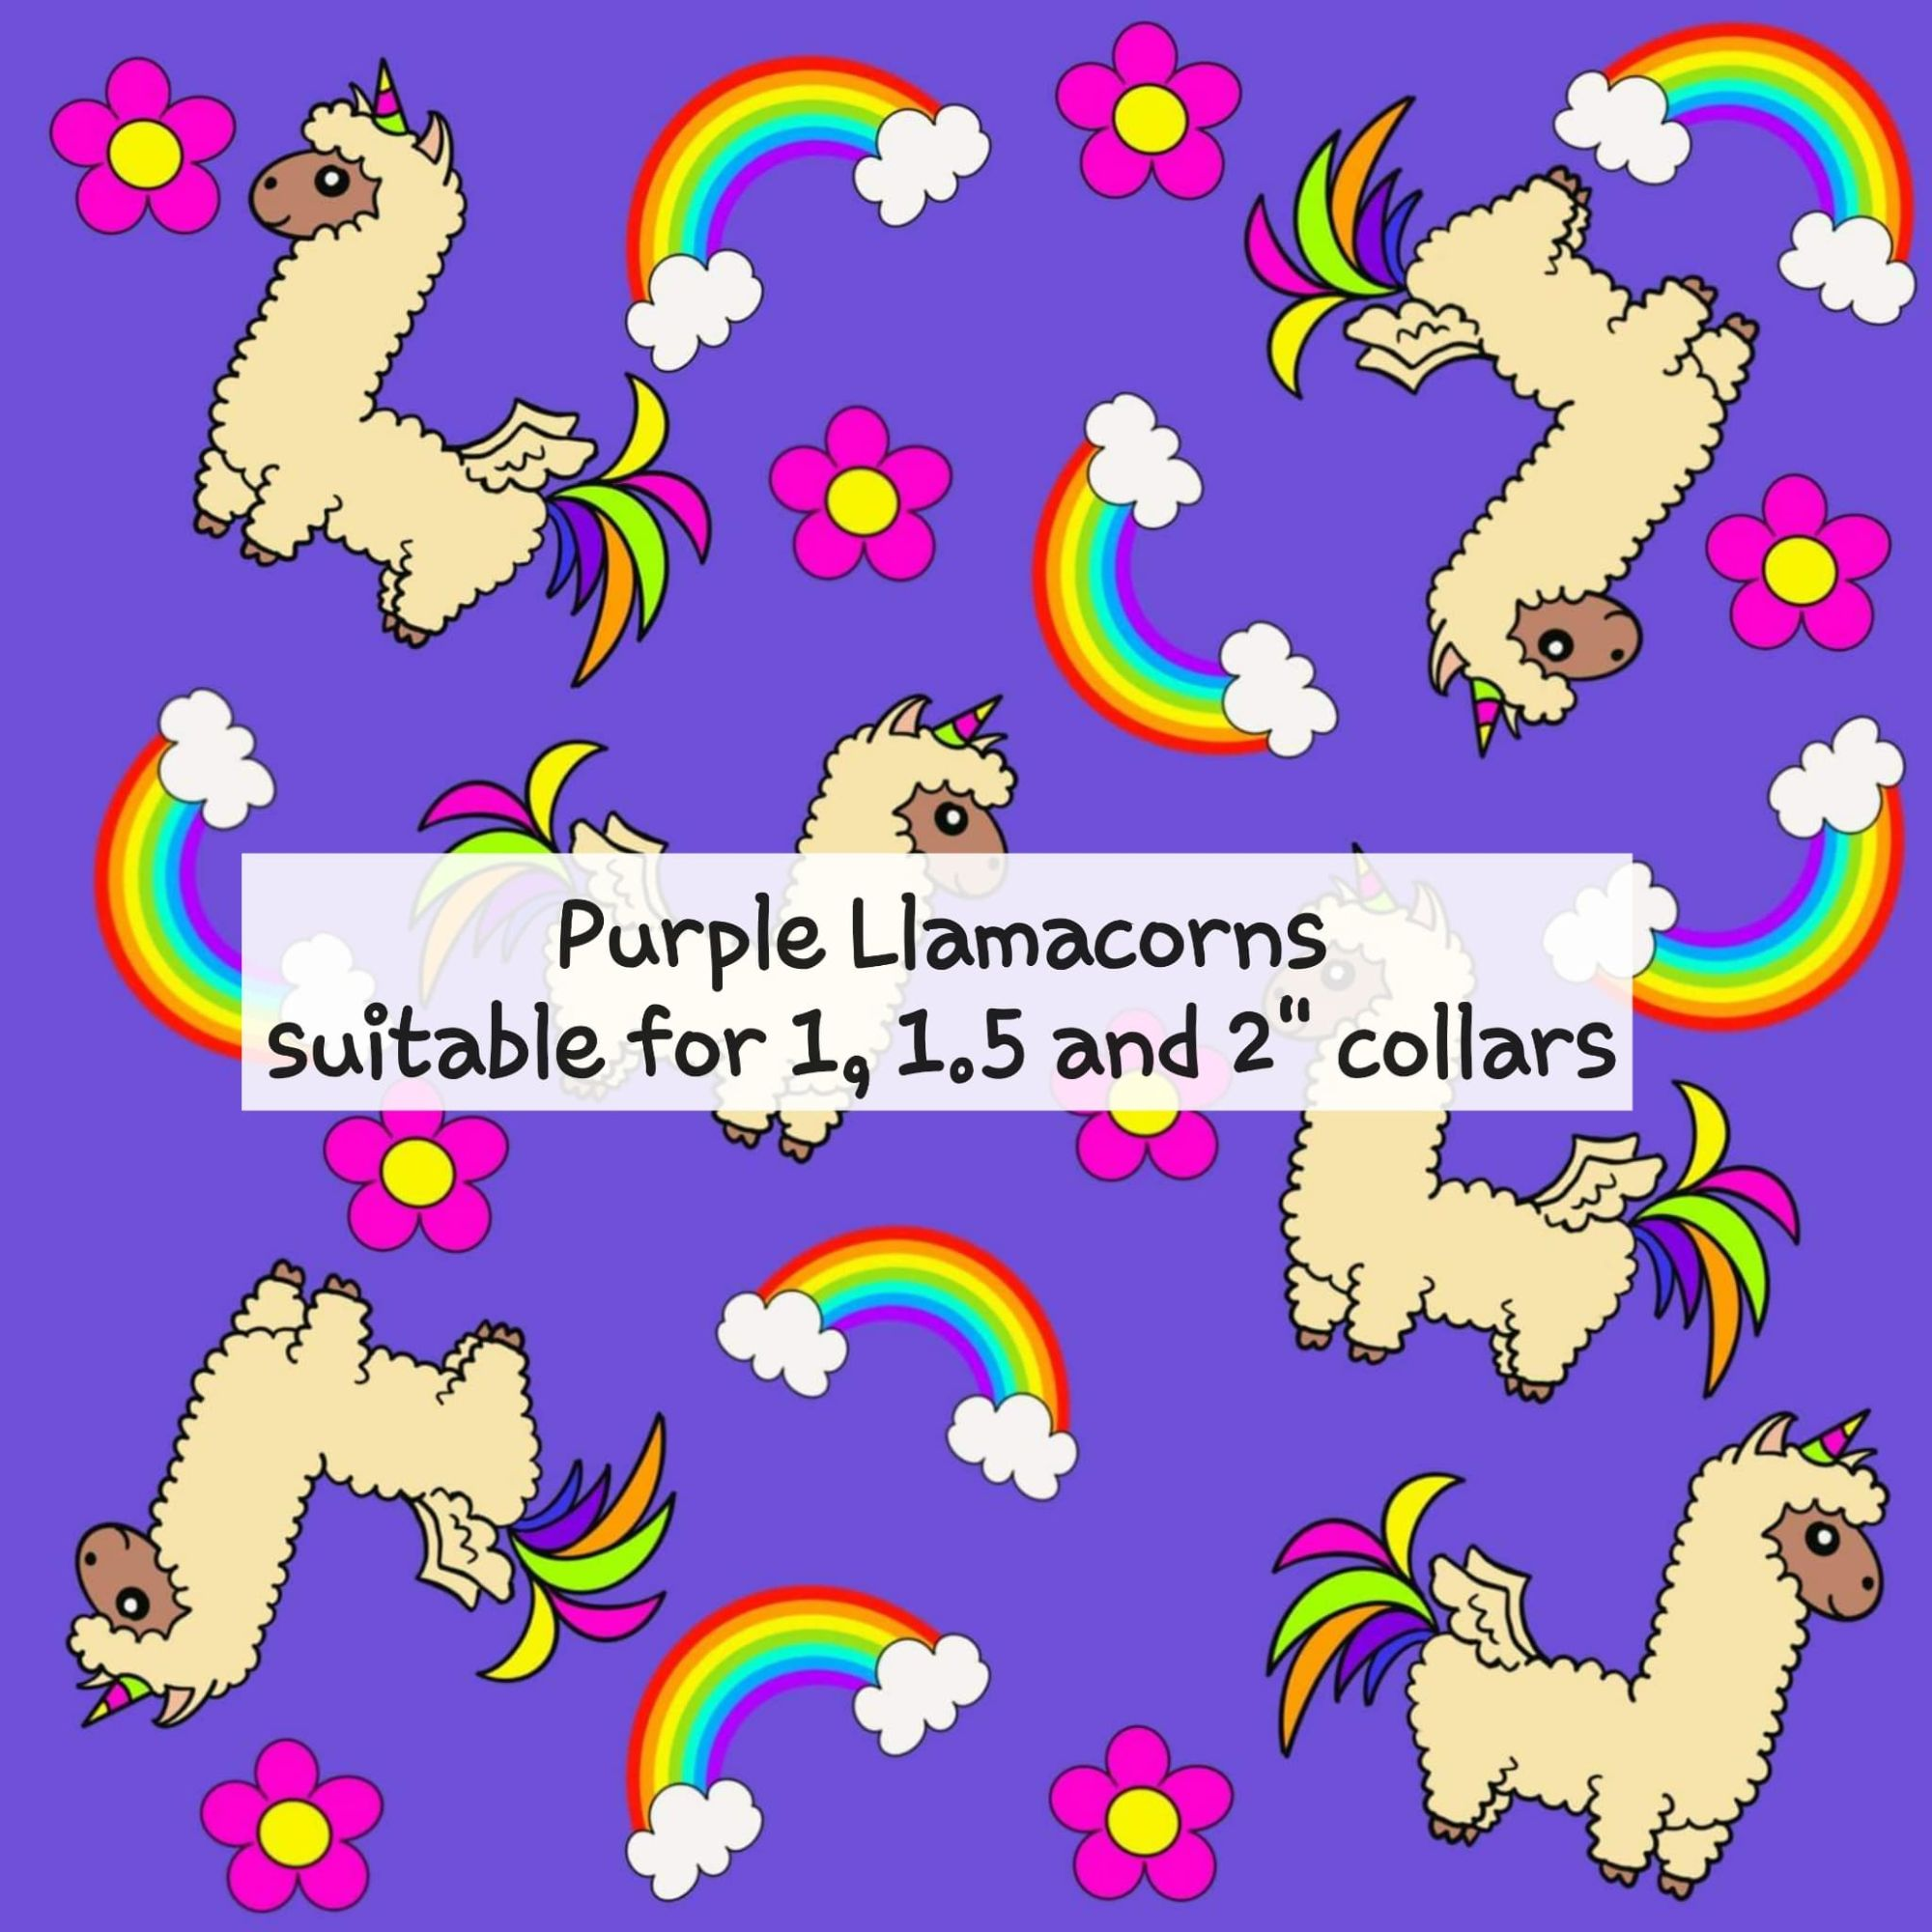 Purple Llamacorns - Suitable for 1, 1.5 and 2 inch collars